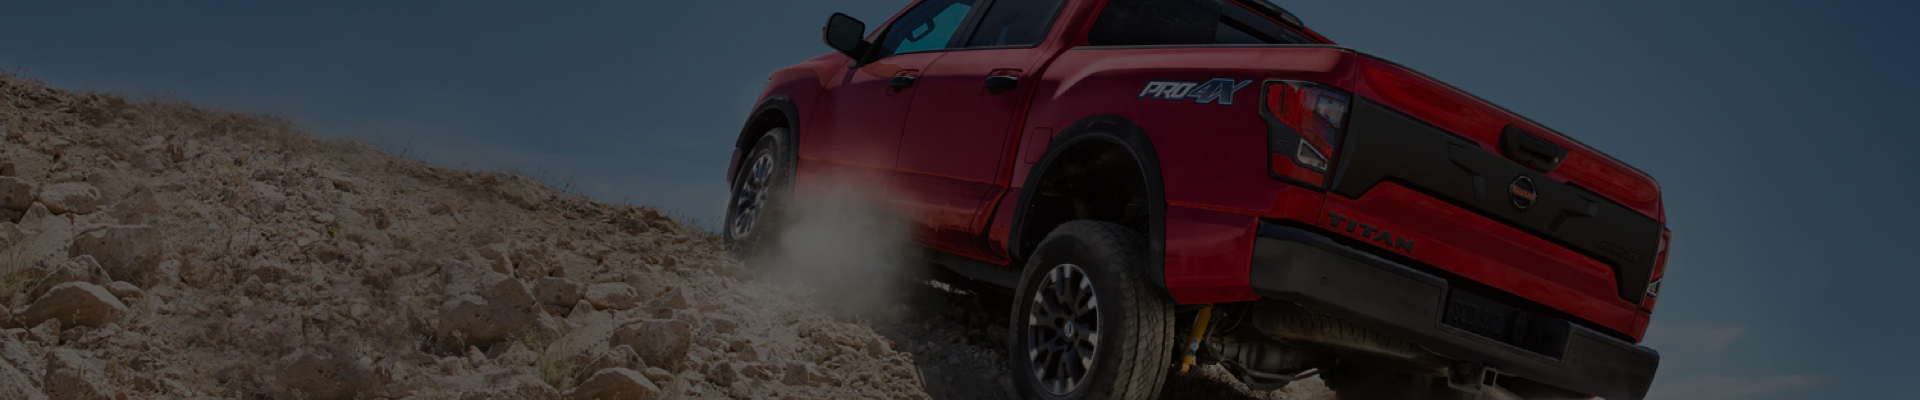 Nissan Titan driving up rough terrain